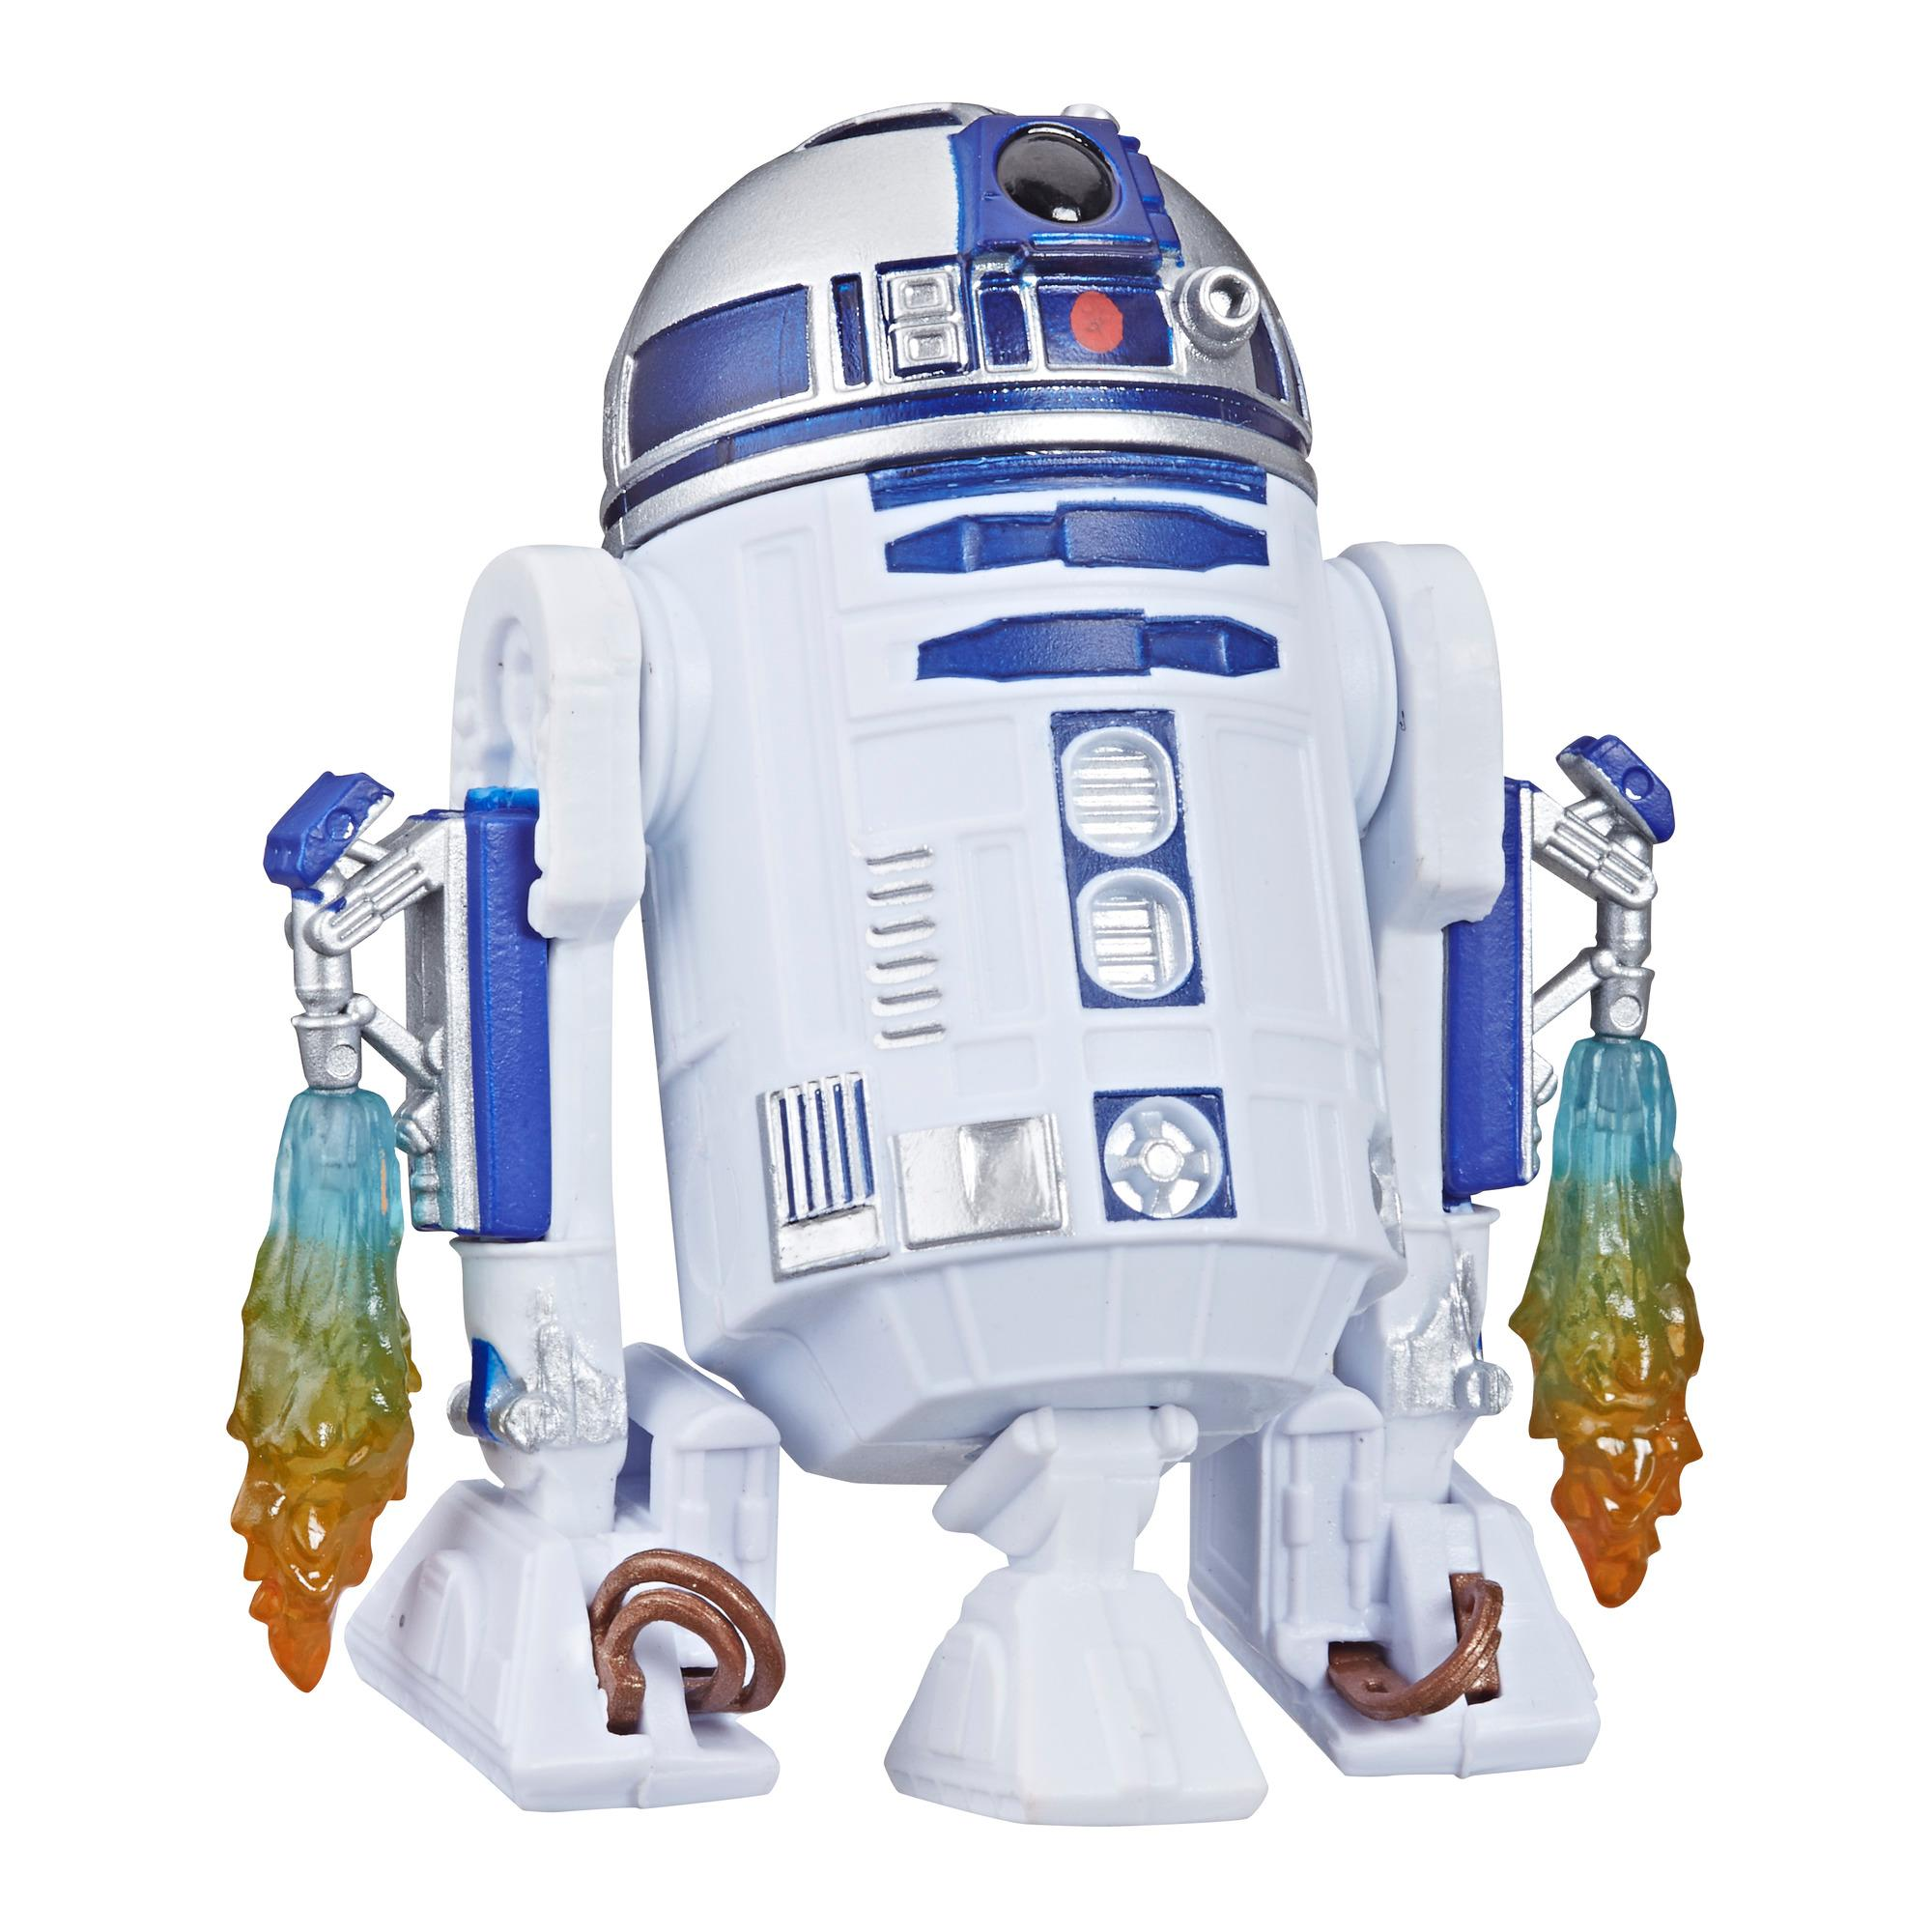 Star Wars Galaxy of Adventures R2-D2 Figur